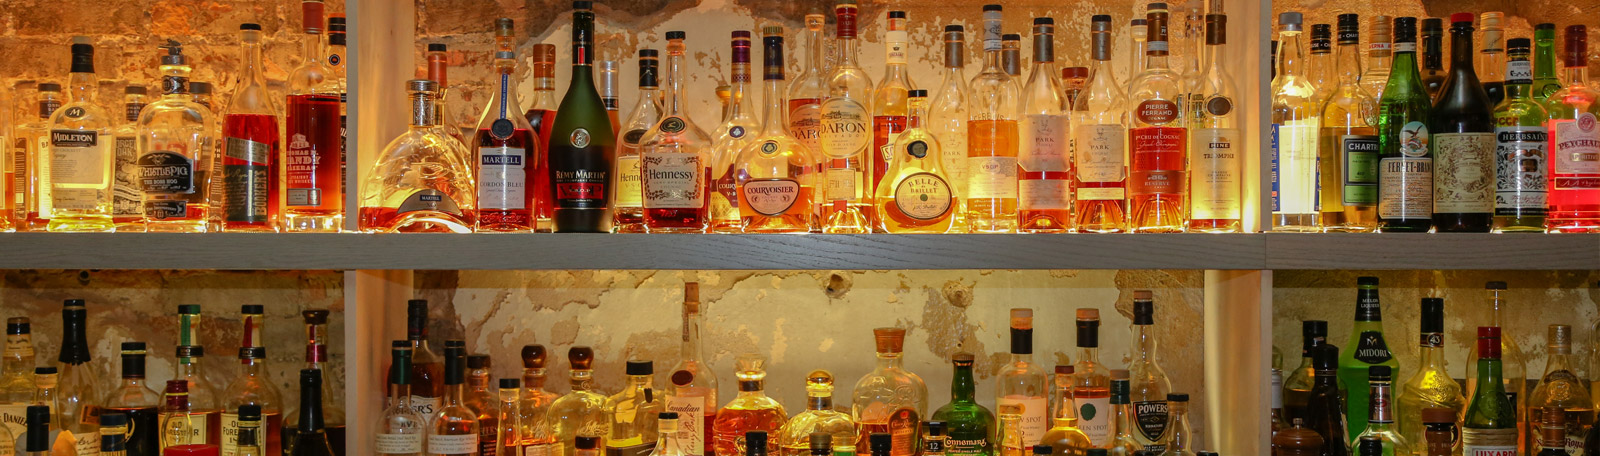 Line of premium quality liquor bottles along the wall behind the bar at the Oyster Bar.